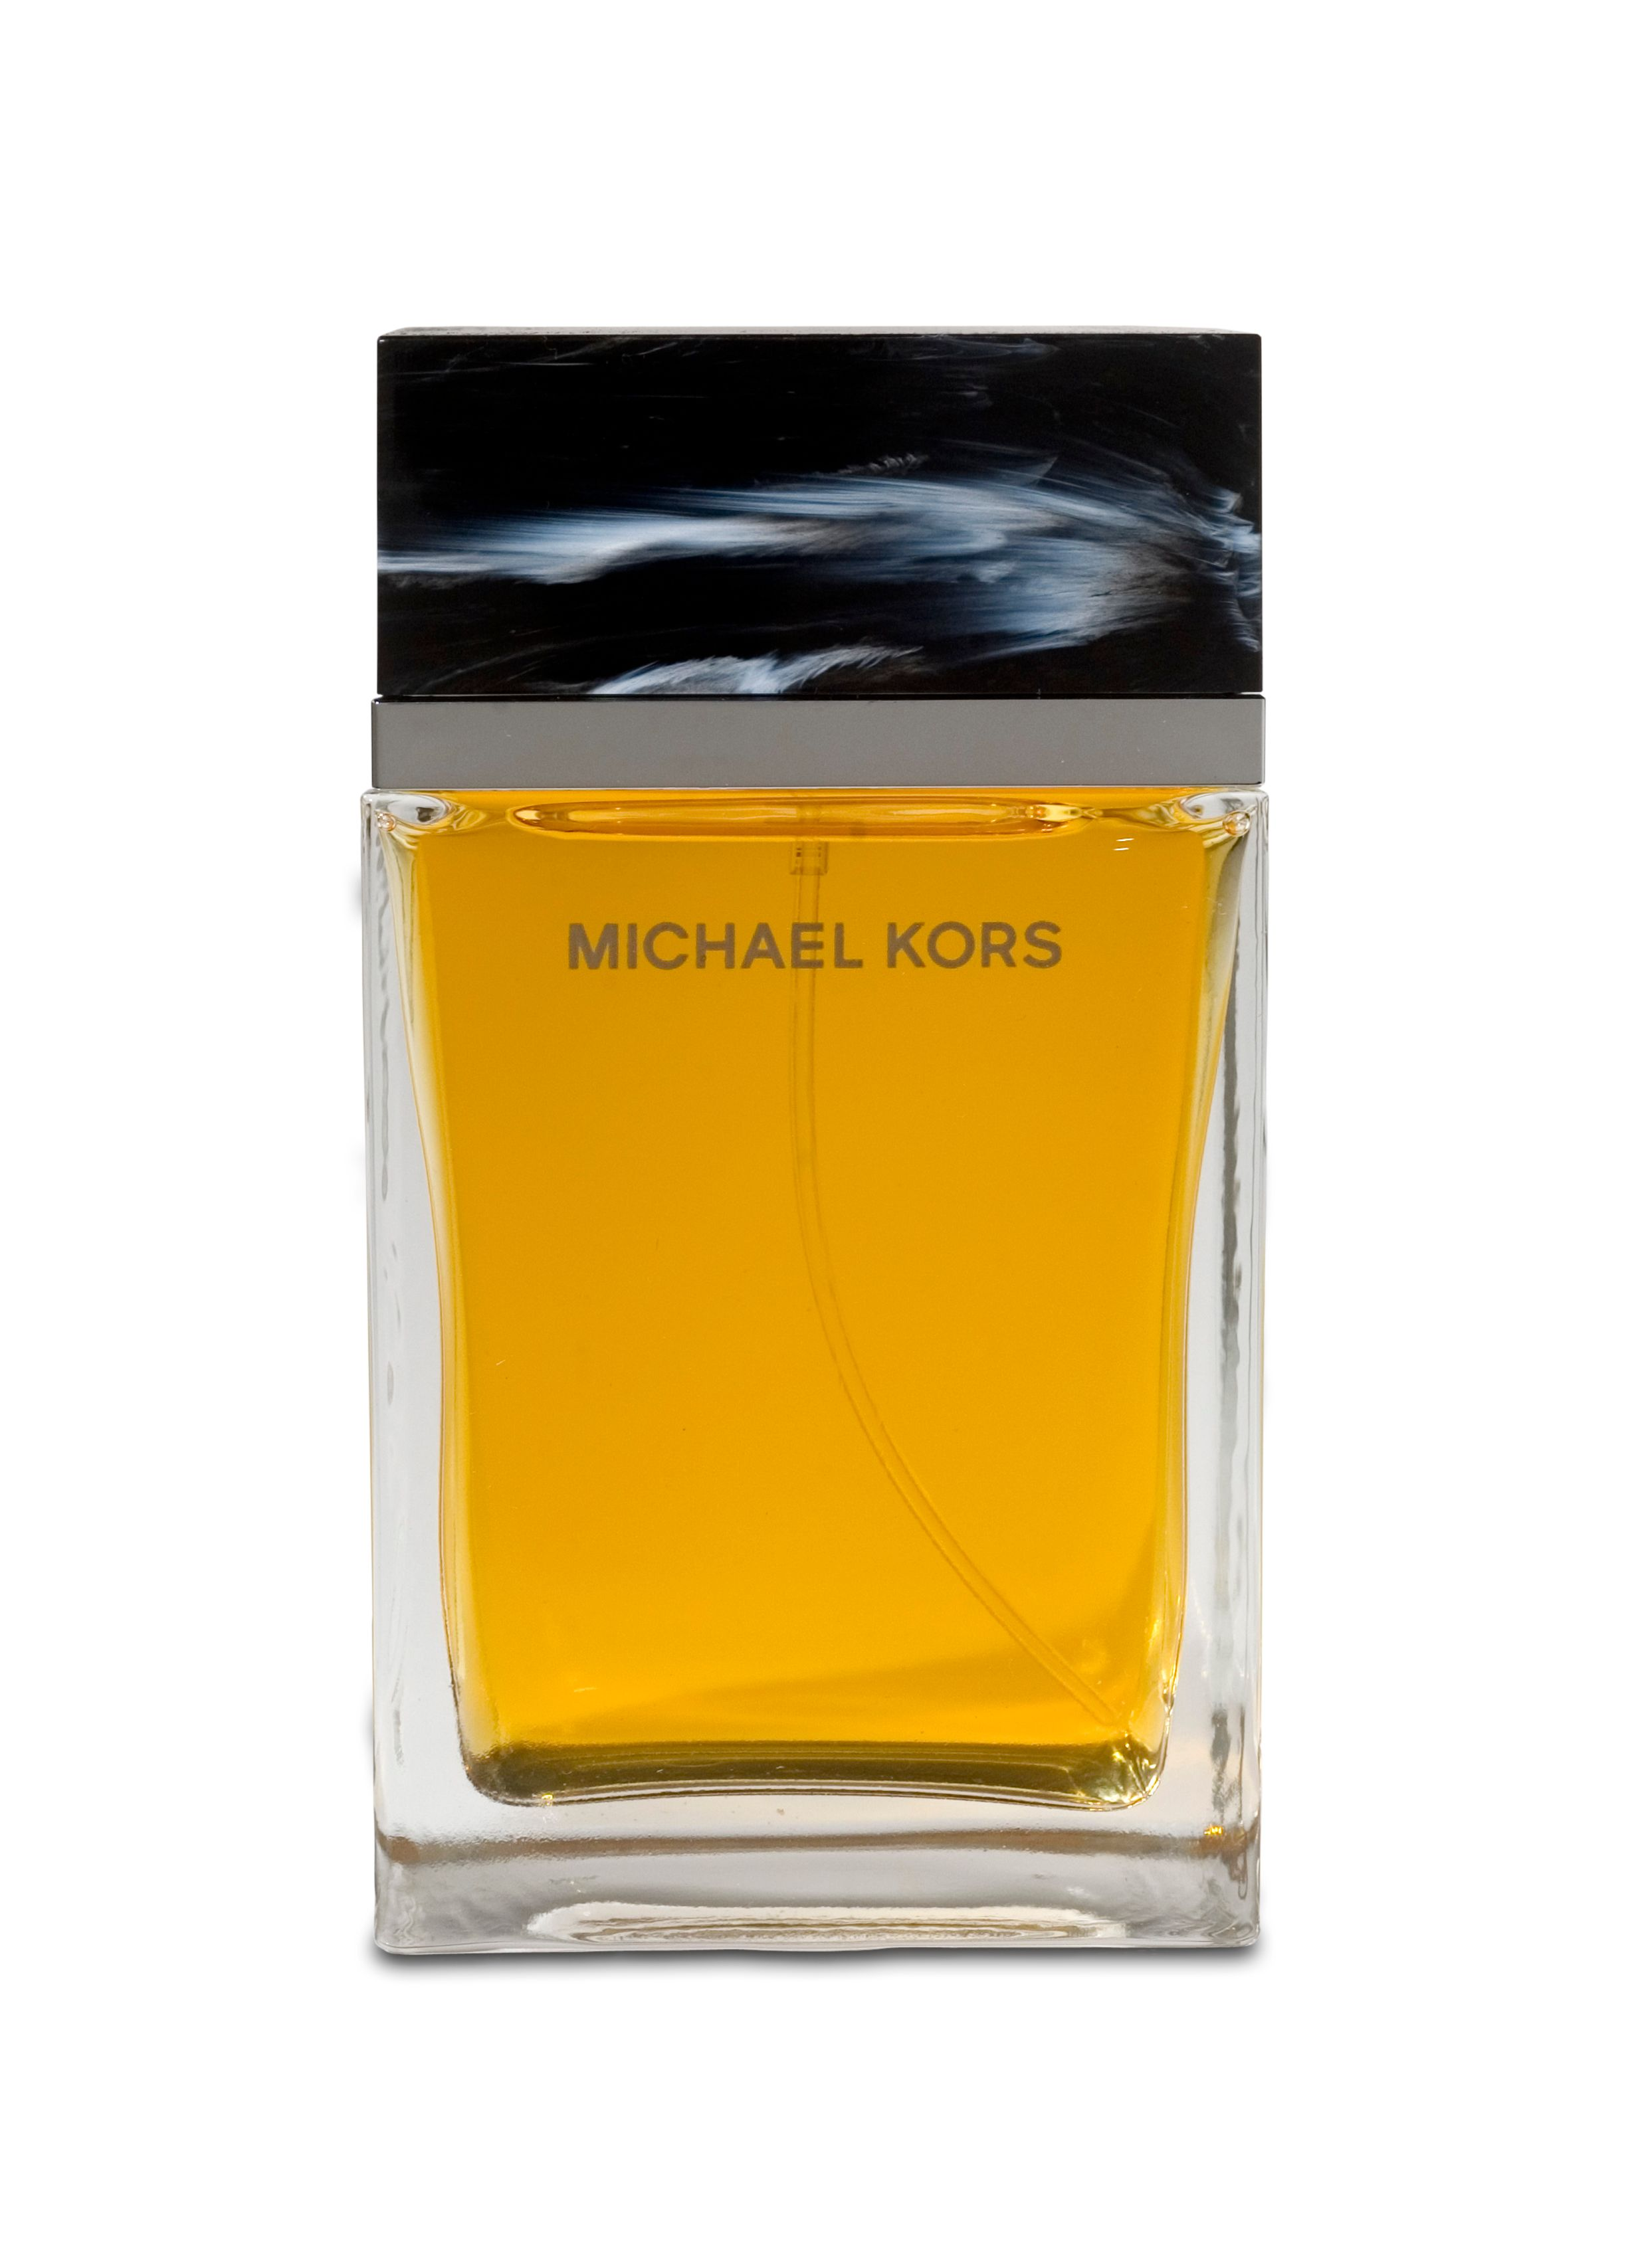 For Men eau de toilette